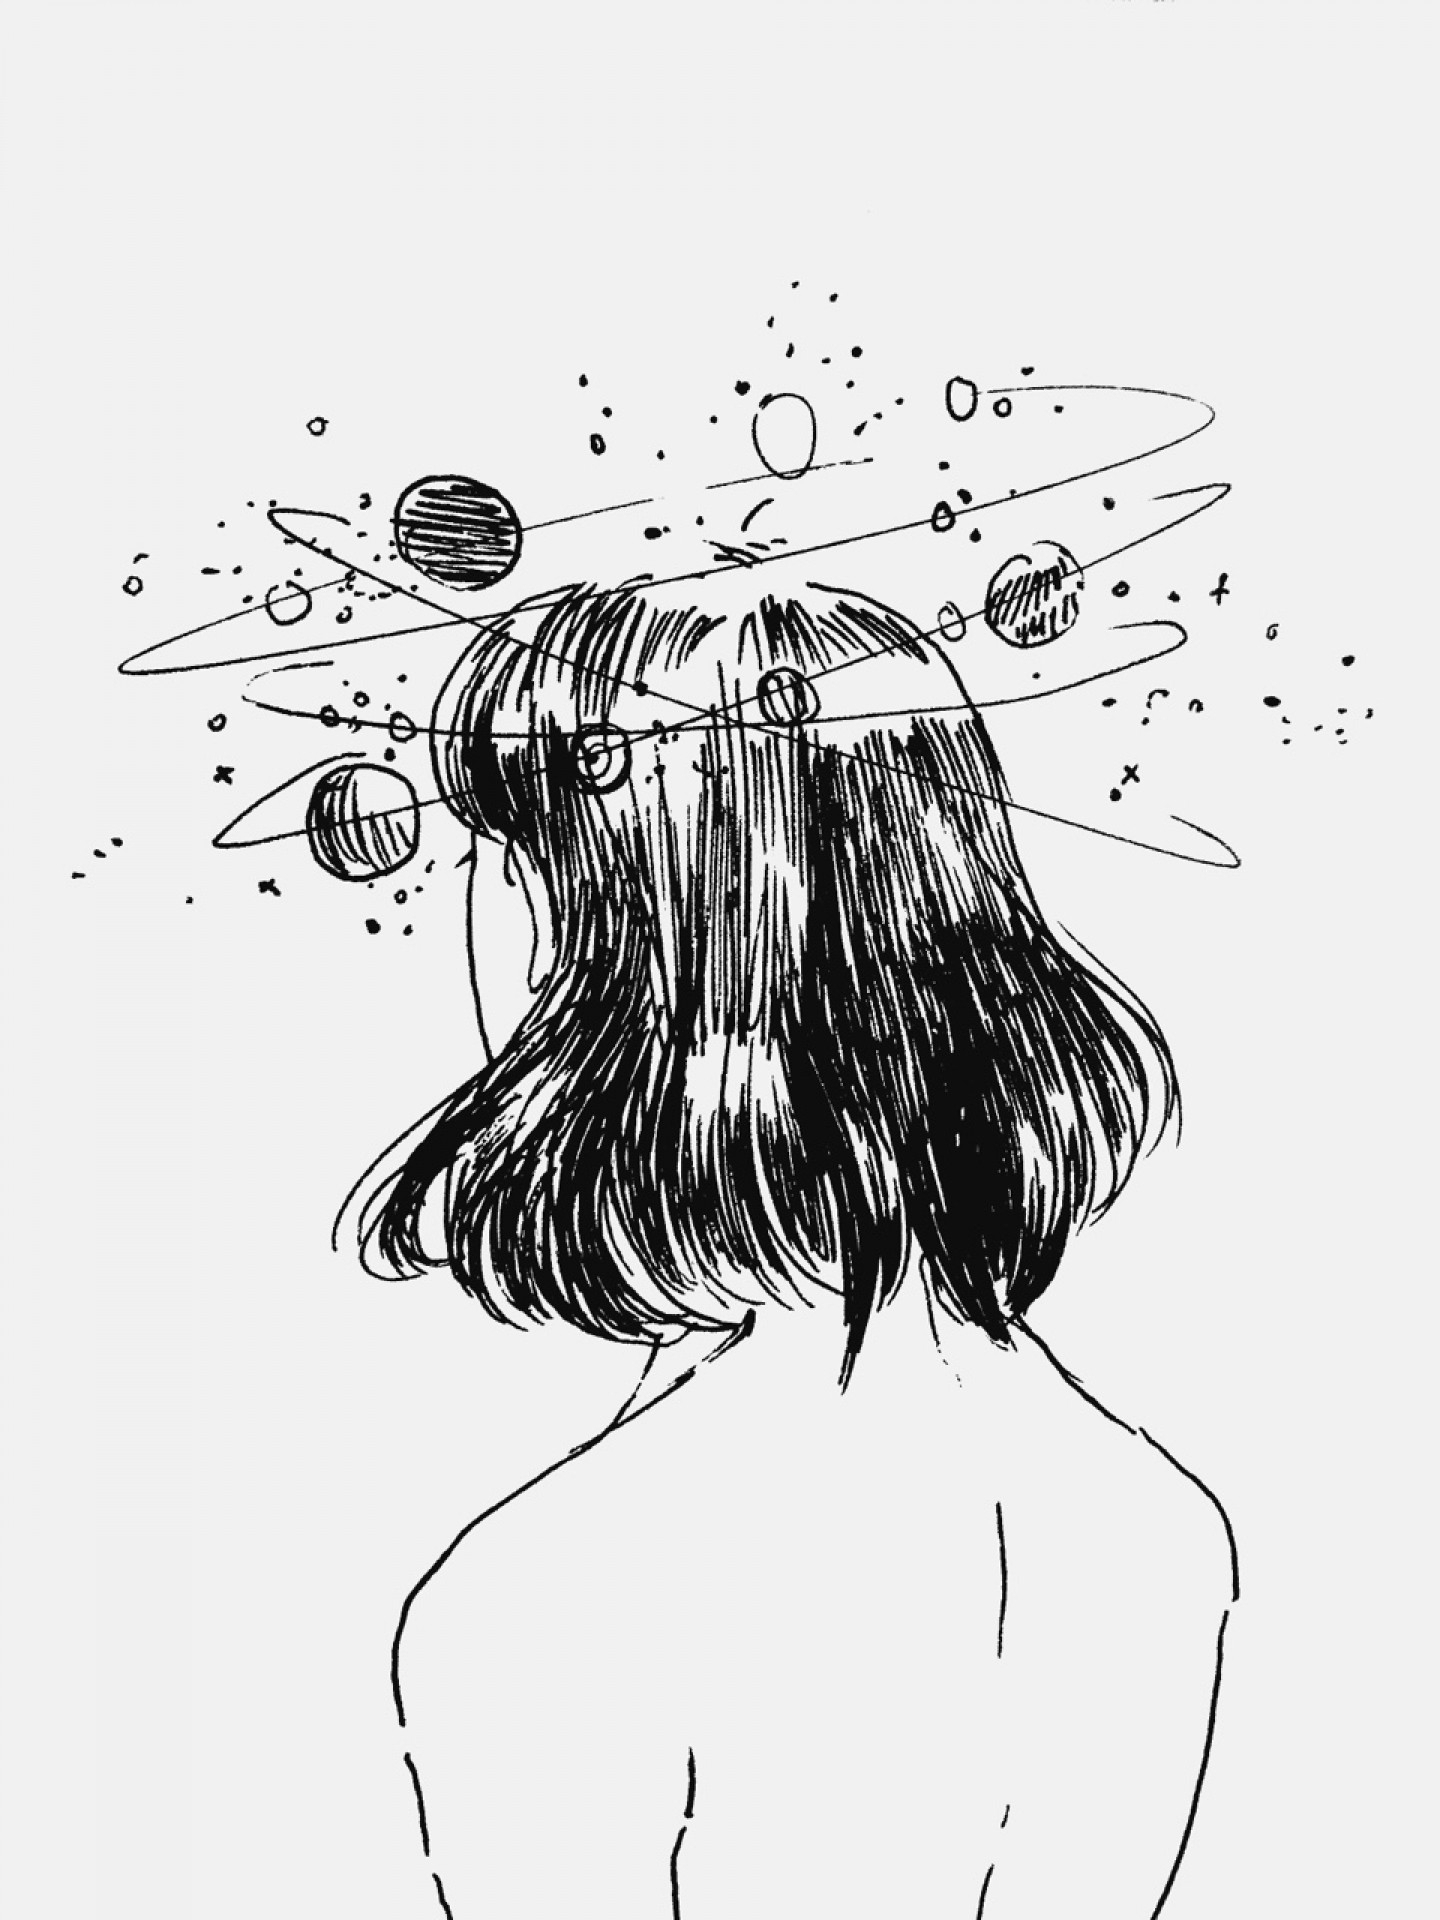 1440x1920 Tumblr Black And White Drawings Best Simple Tumblr Drawings